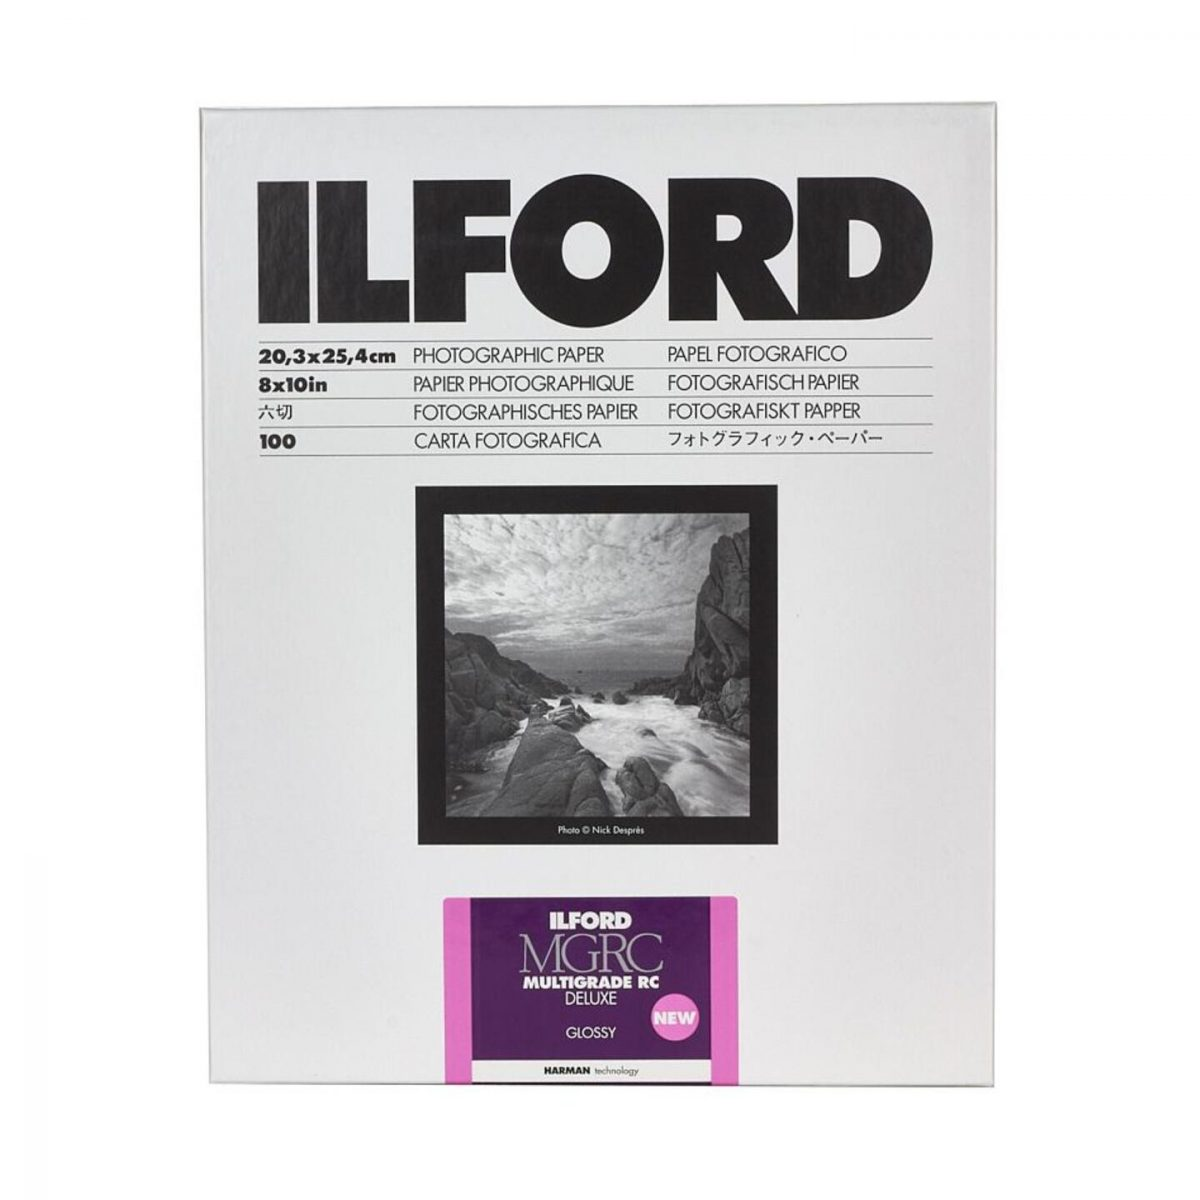 ilford_mg_rc_deluxe_glossy_01